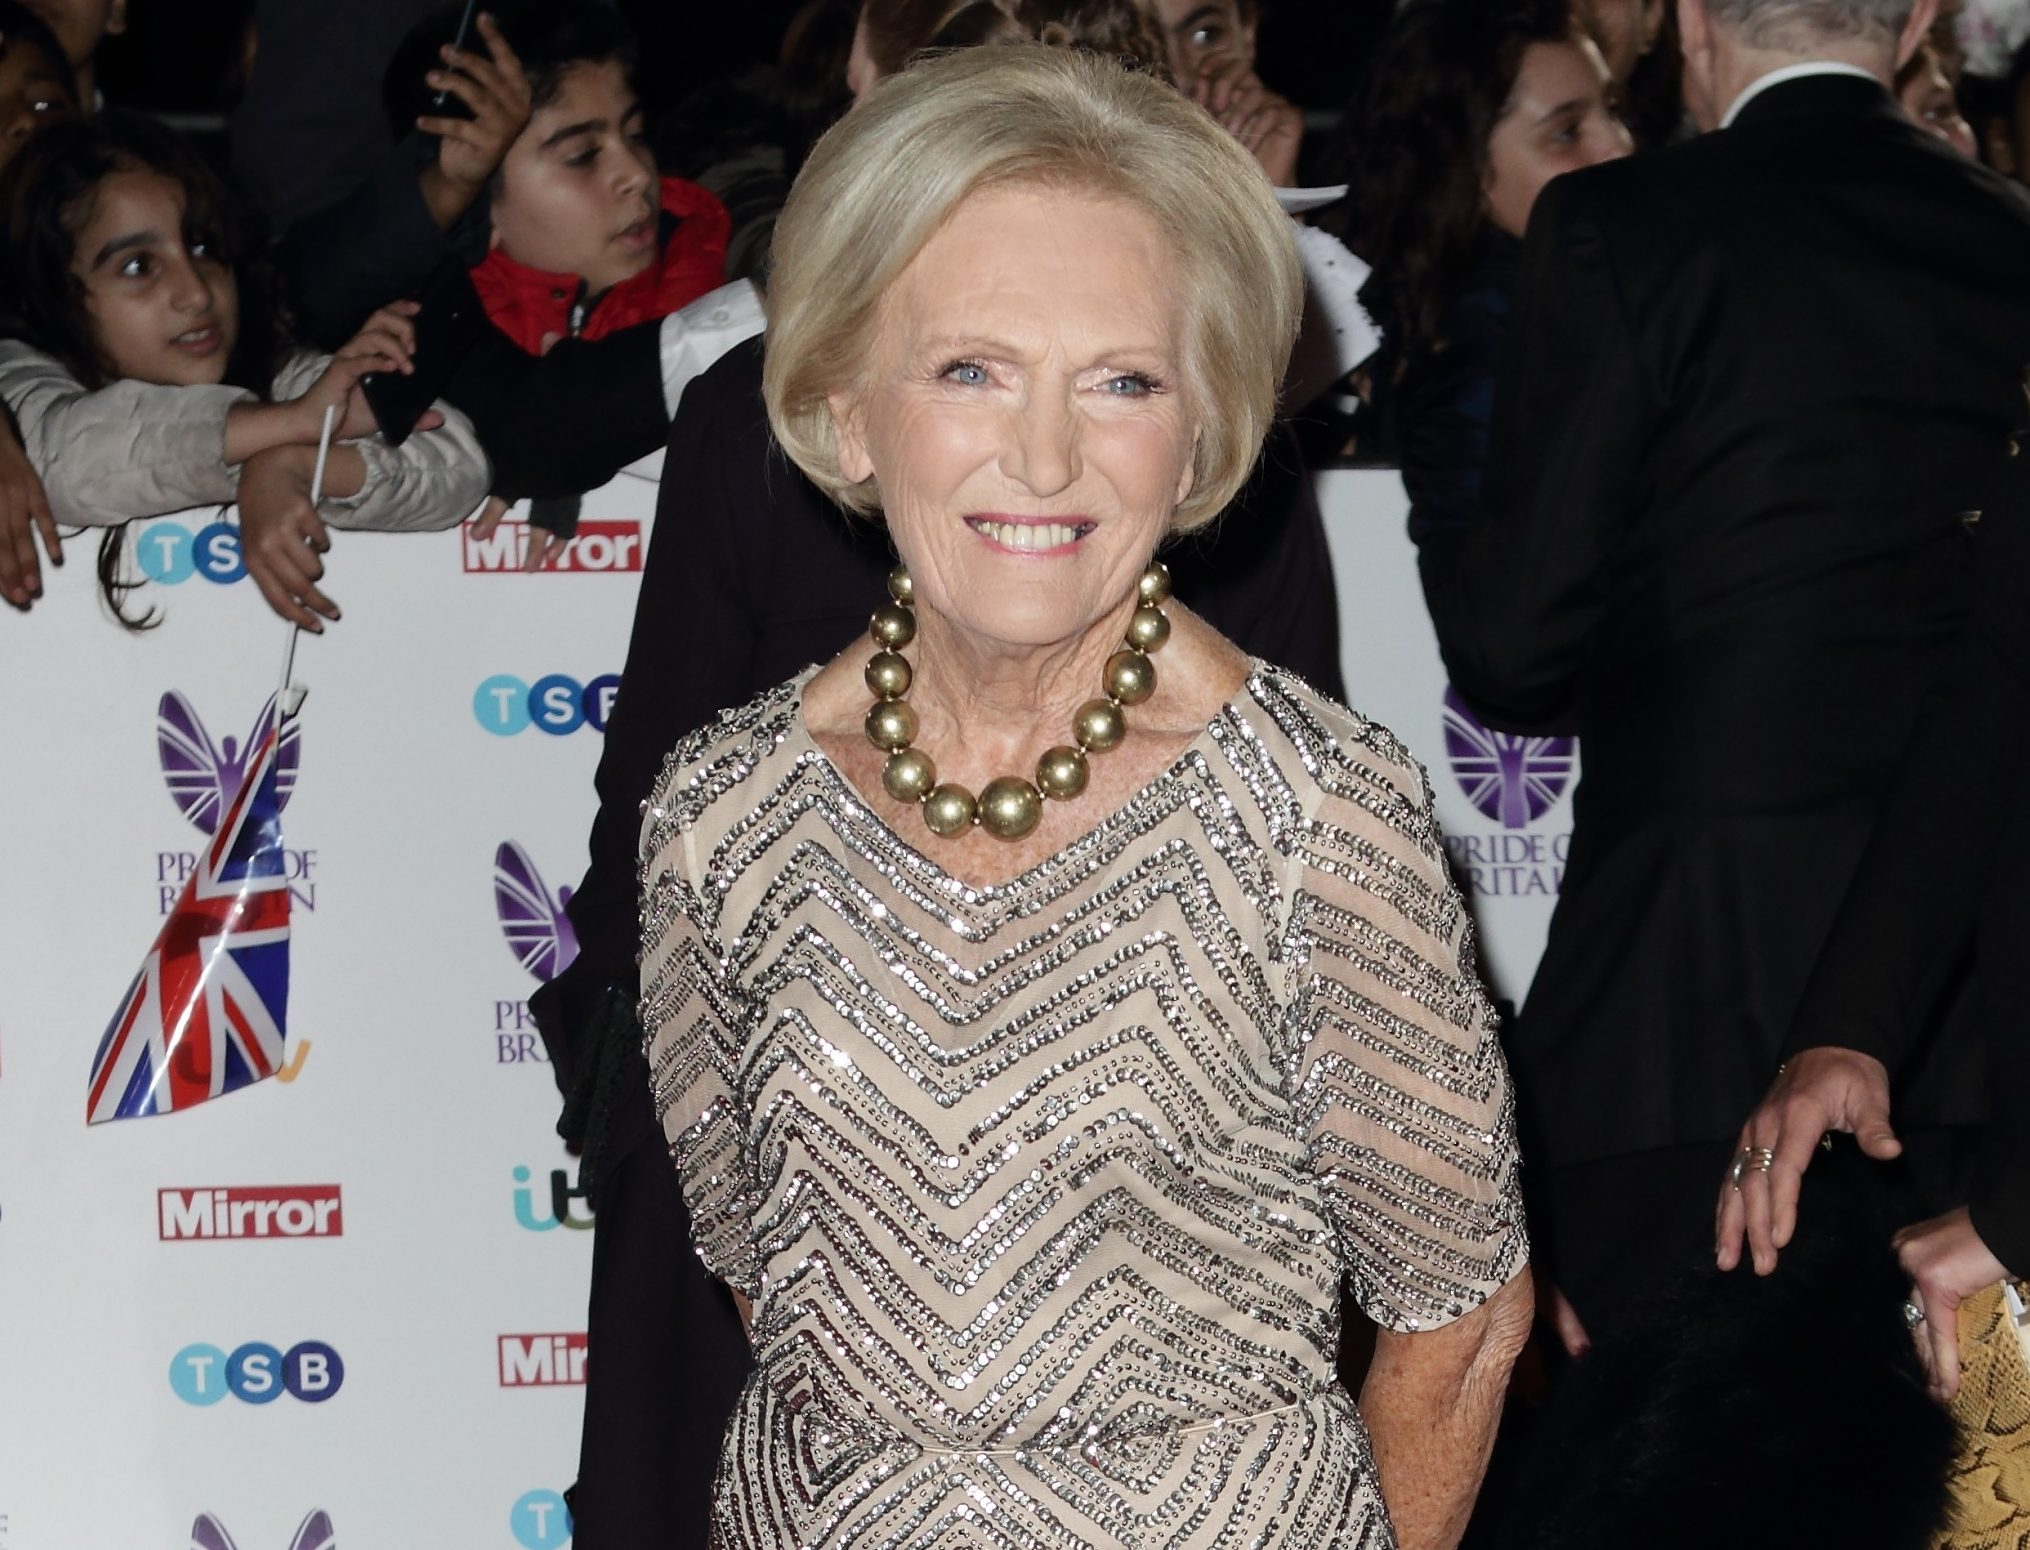 Mary Berry has been given ANOTHER new cooking show!